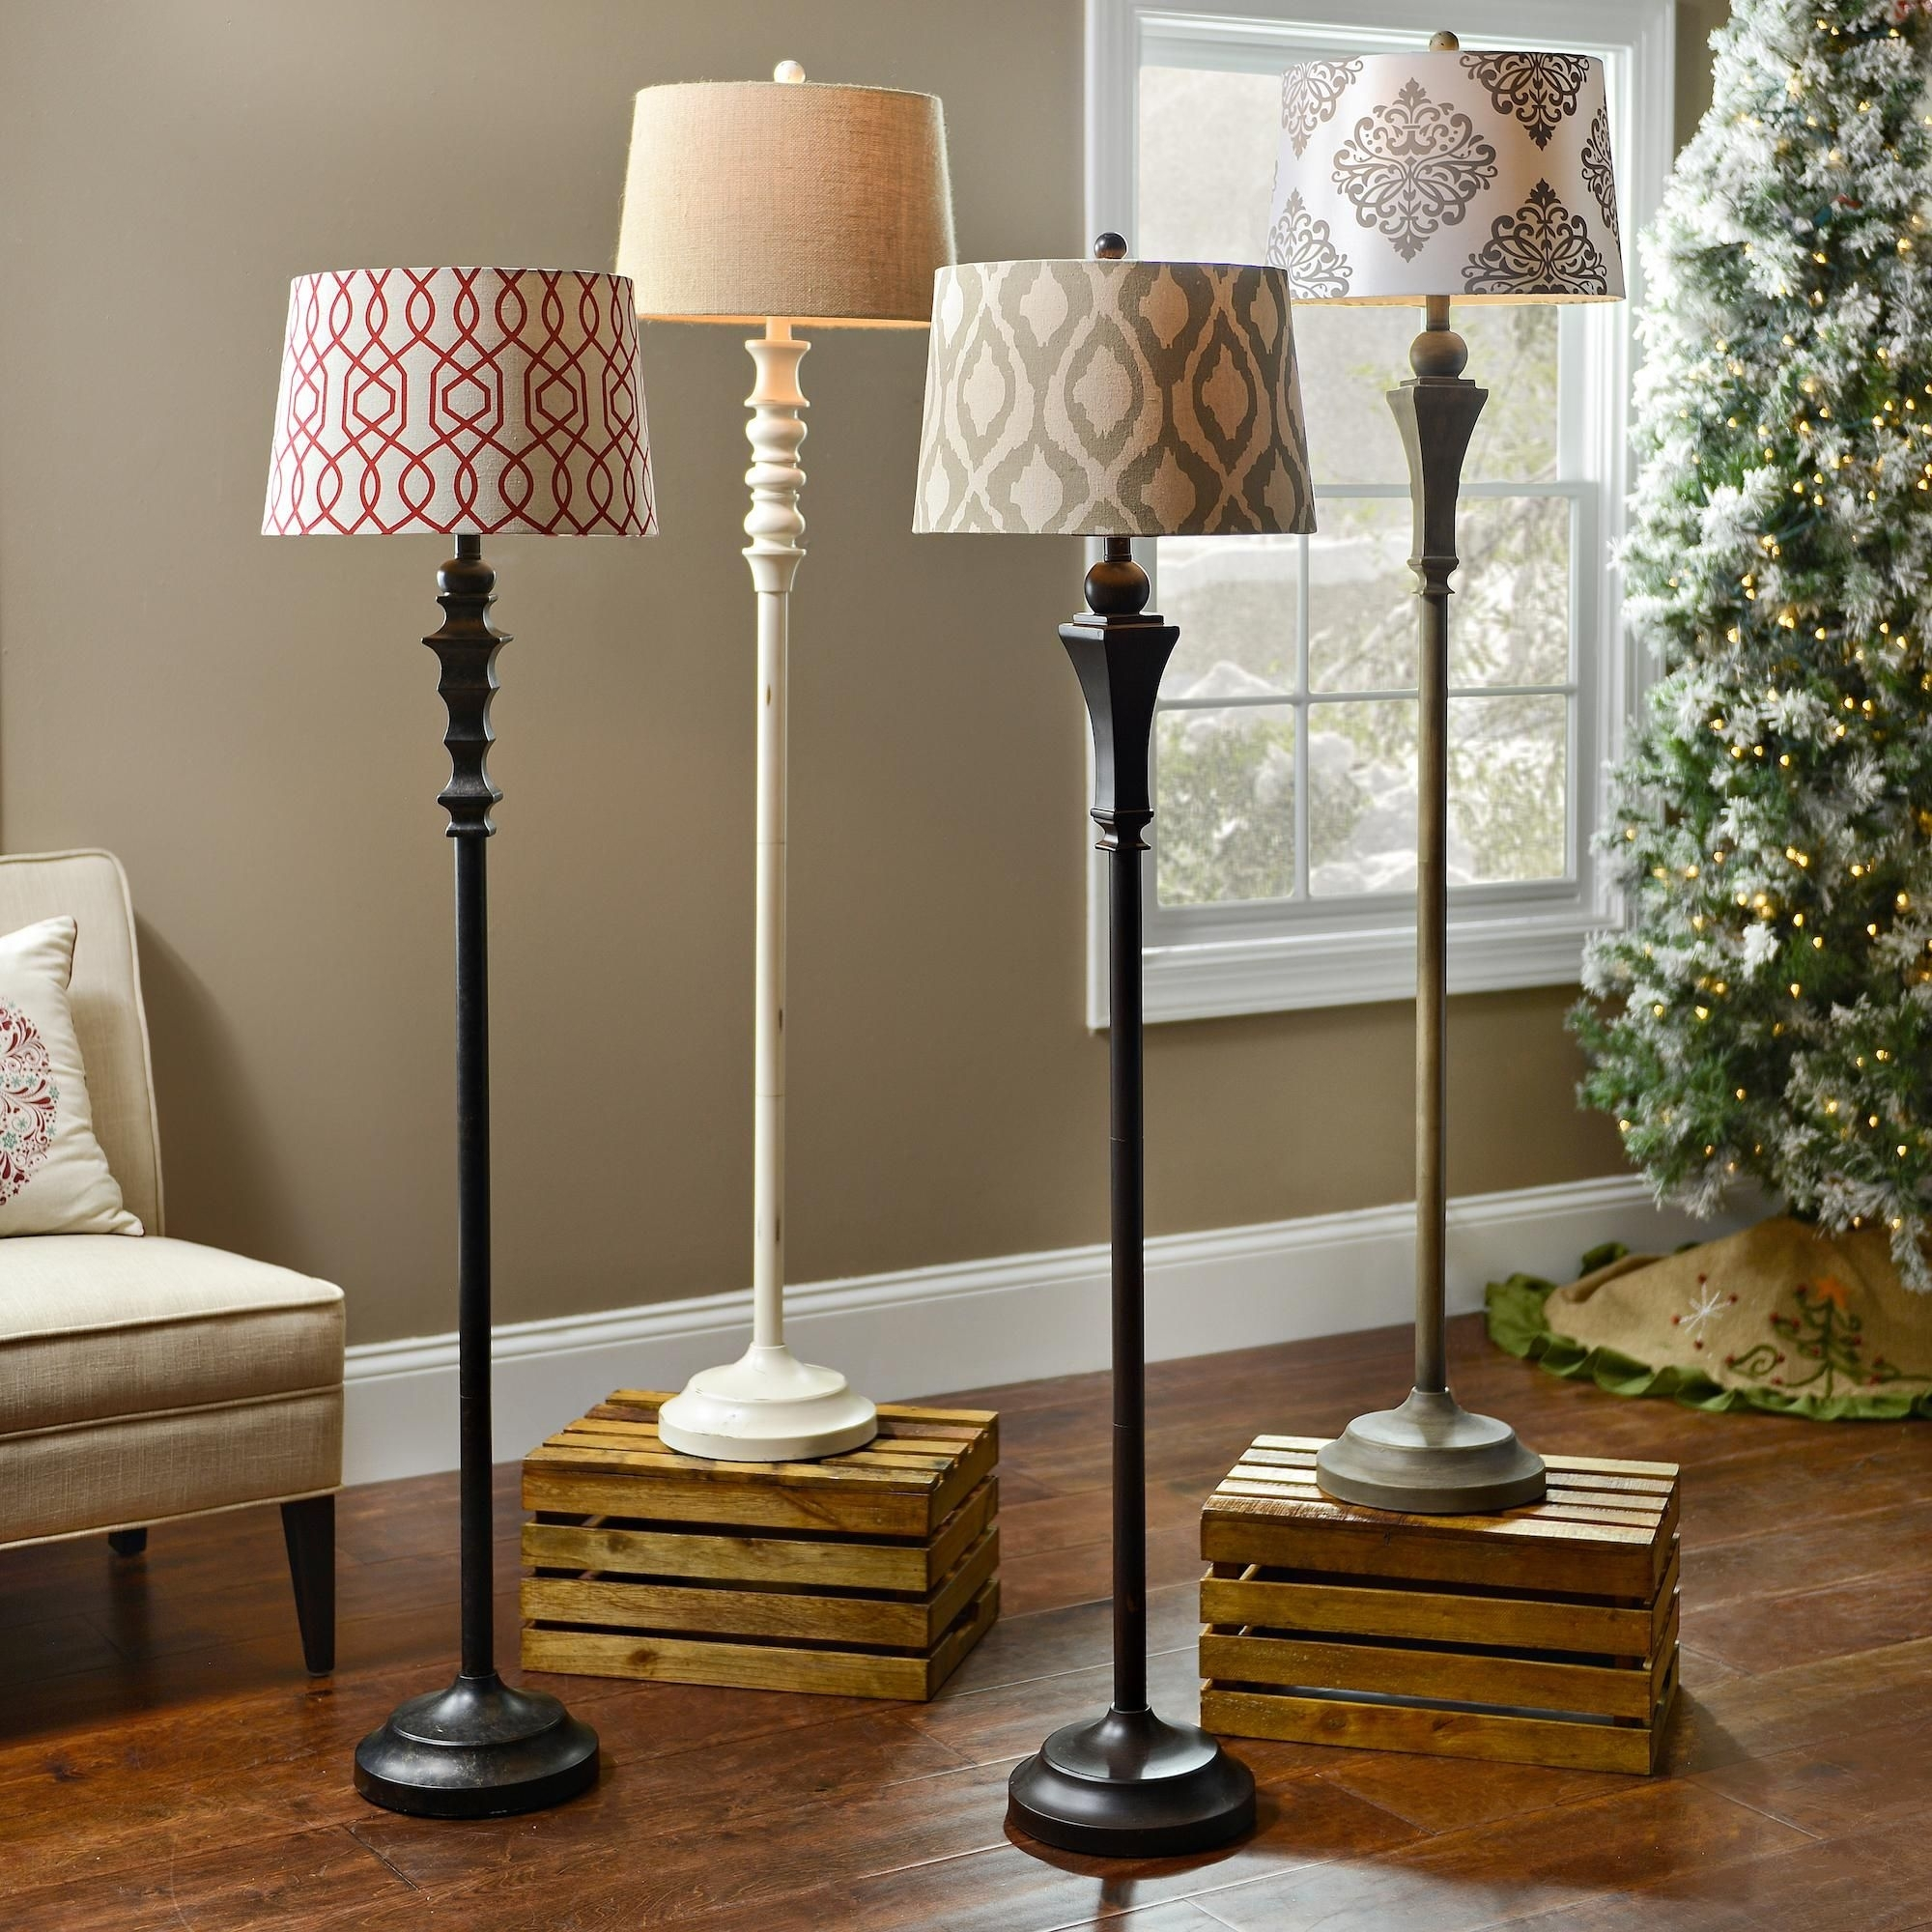 Add Light To A Dim Corner With A Stylish Floor Lamp! | Love Your Intended For Living Room Table Lamps (#2 of 15)